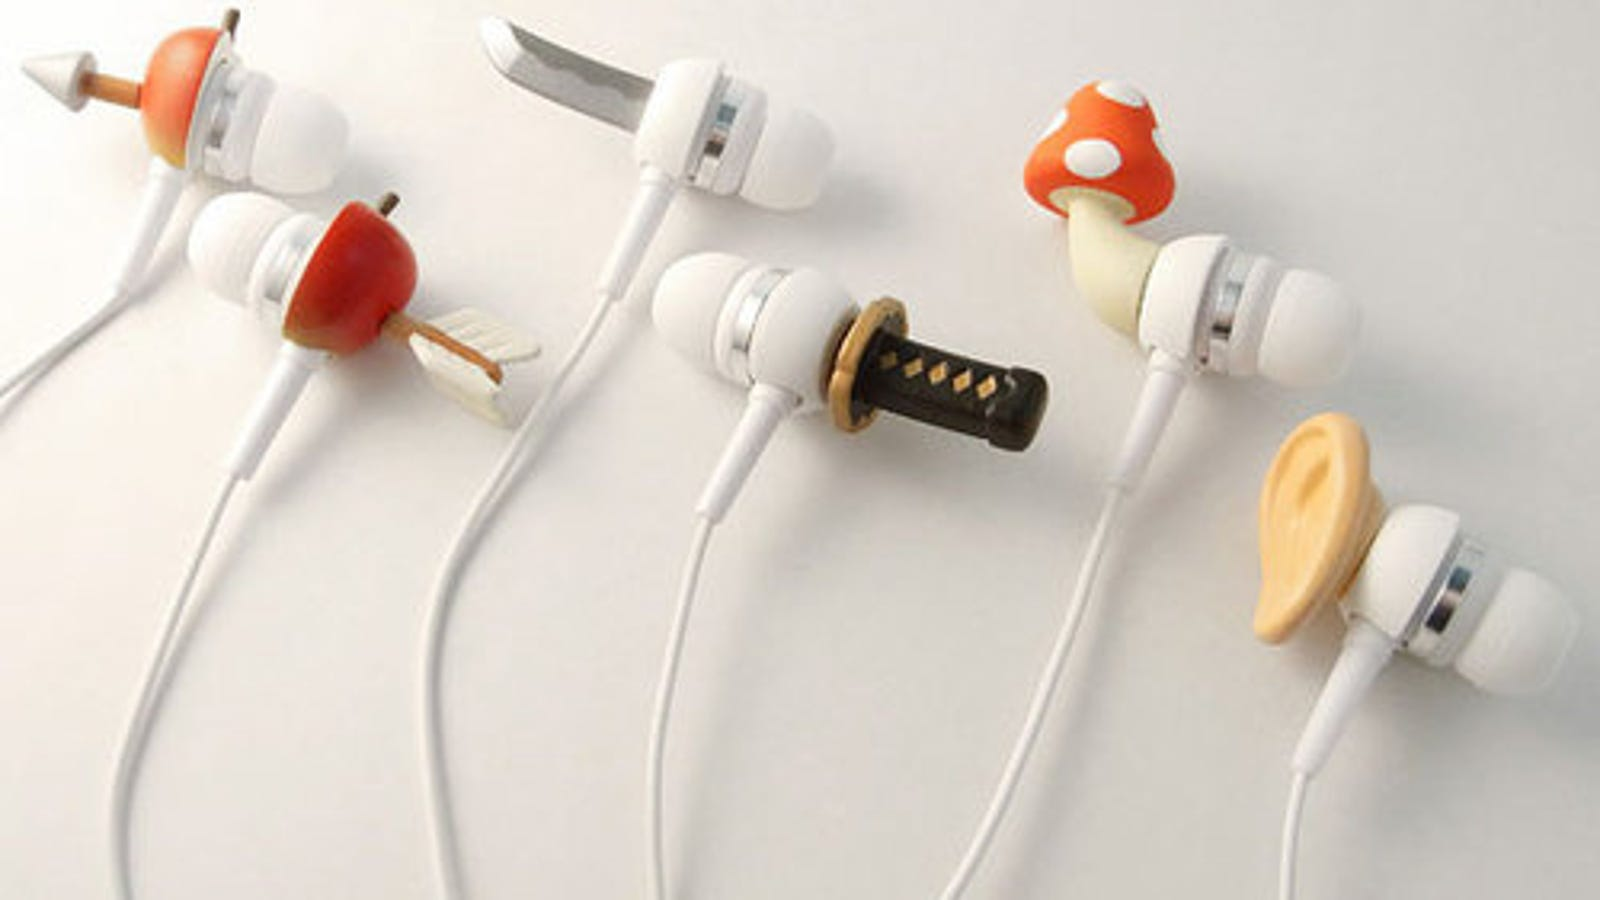 kz zsr earbud only - Katana Earbuds Show the World How I Feel When I Listen to LFO